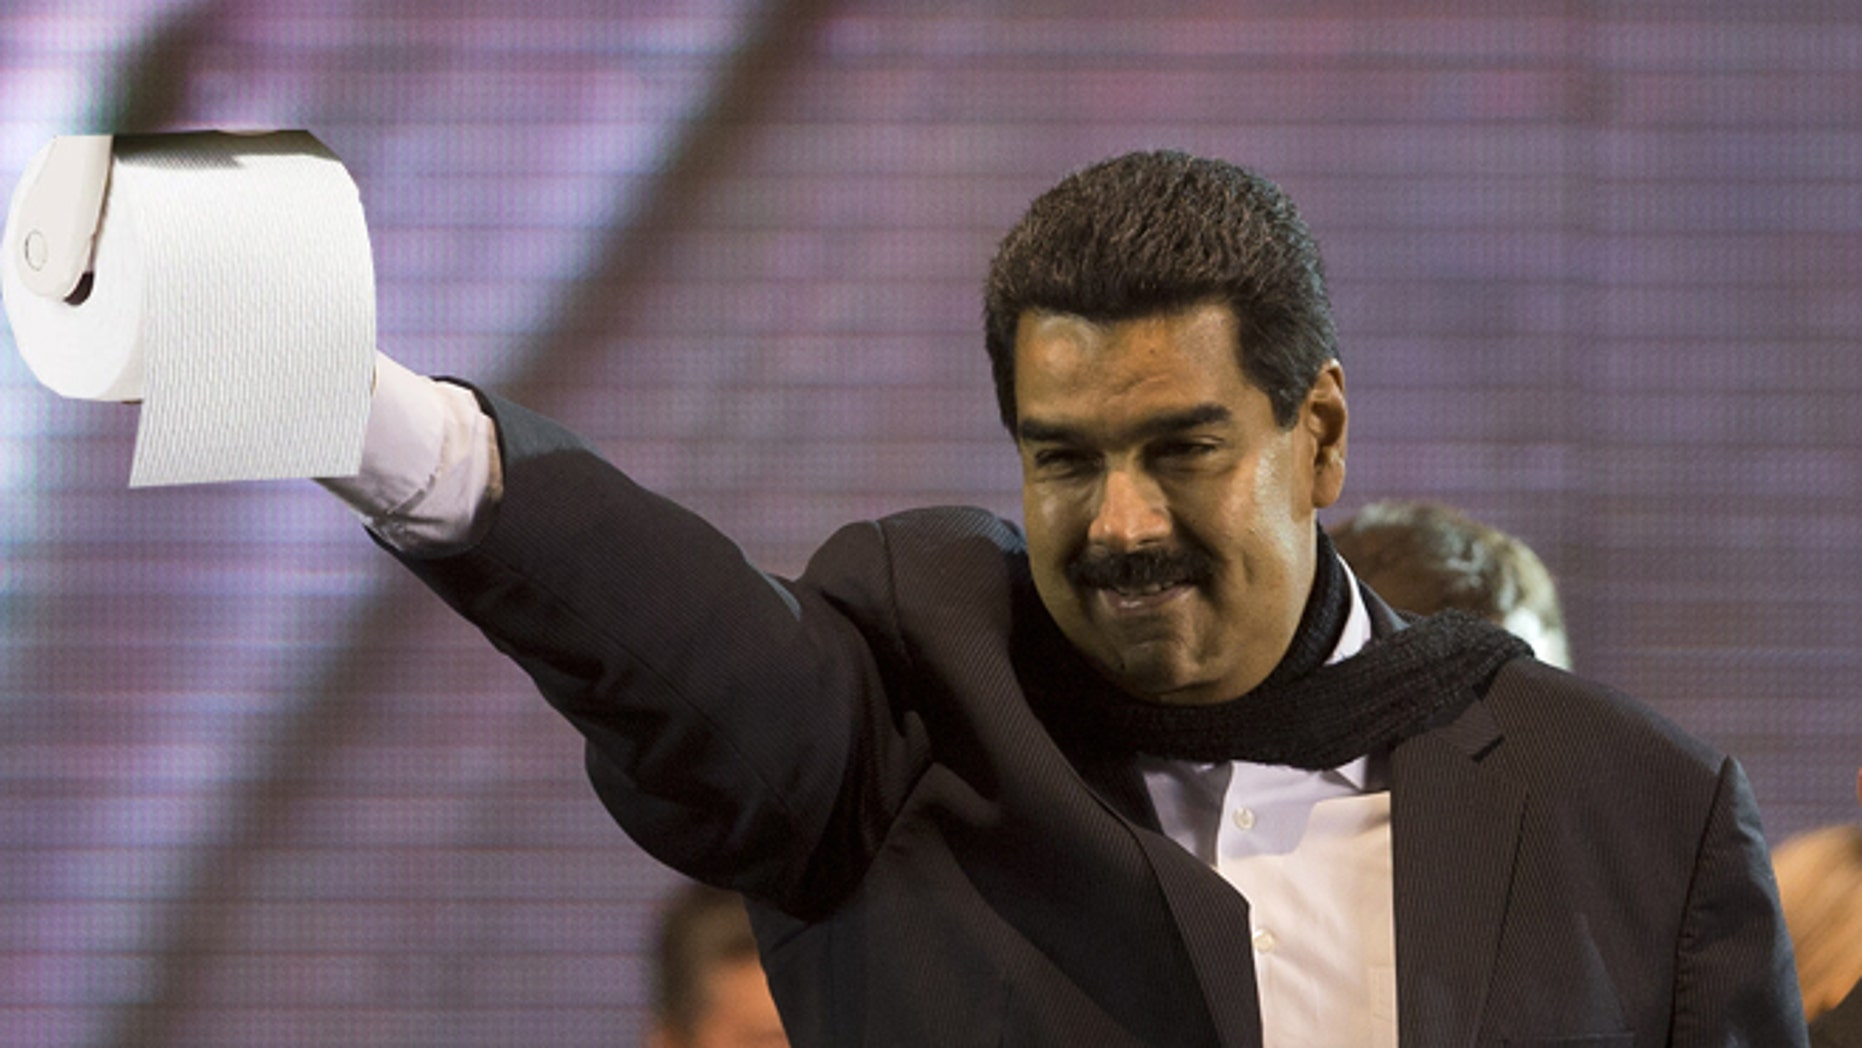 Venezuela's President Nicolas Maduro flashes a victory sign during a rally in Buenos Aires, Argentina, Wednesday, May 8, 2013. Maduro said Venezuela and Argentina are more closely aligned than ever despite the deaths of Venezuelan President Hugo Chavez and of Nestor Kirchner, the husband of President Cristina Fernandez who preceded her in the presidency. (AP Photo/Victor R. Caivano)